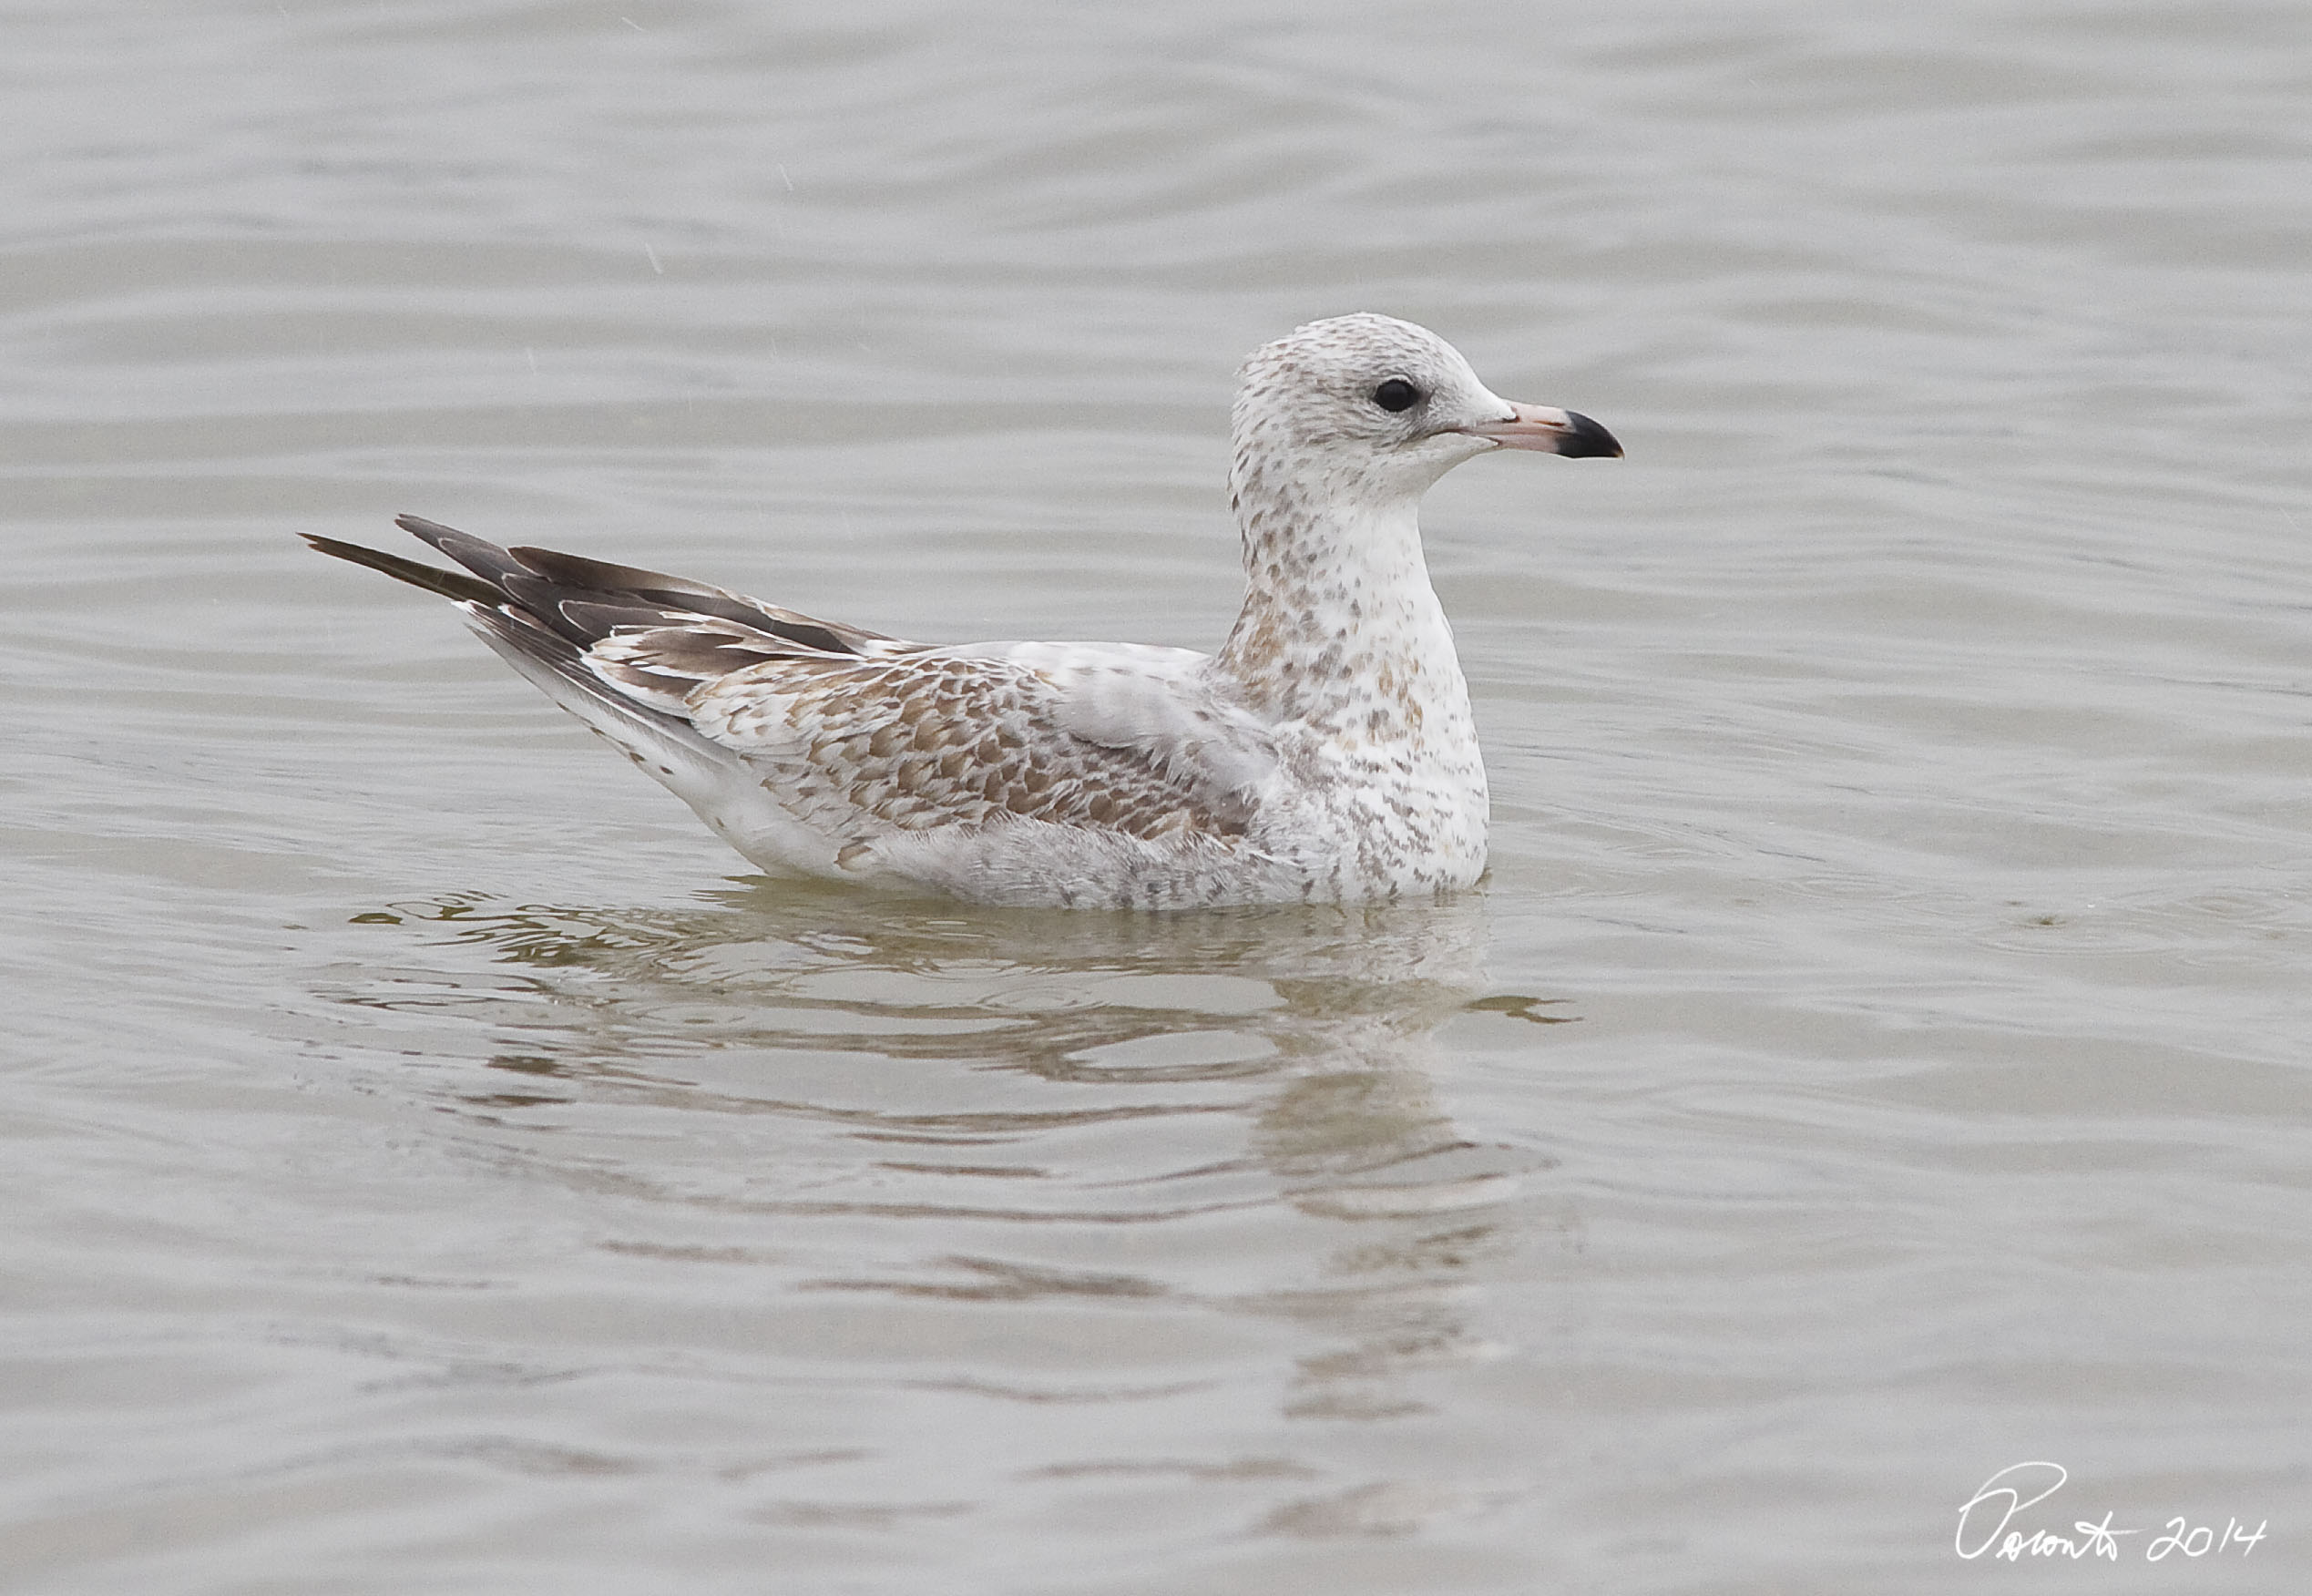 First cycle Ring-billed Gull - post juvenal molt has begun